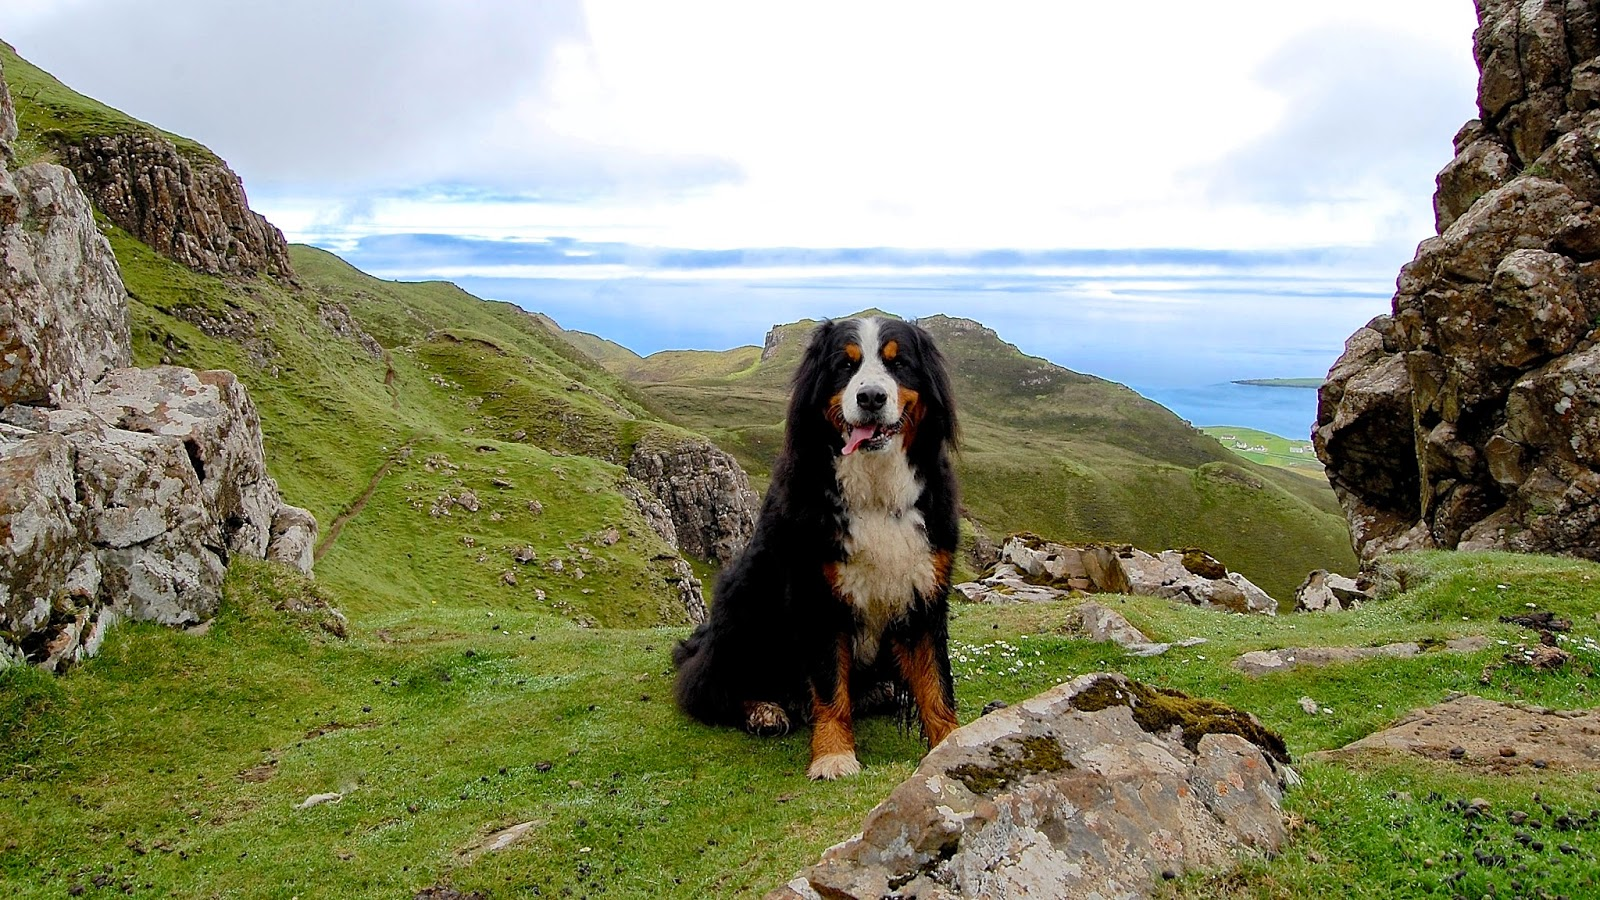 Mattie hiking on the Quiraing on the Isle of Skye